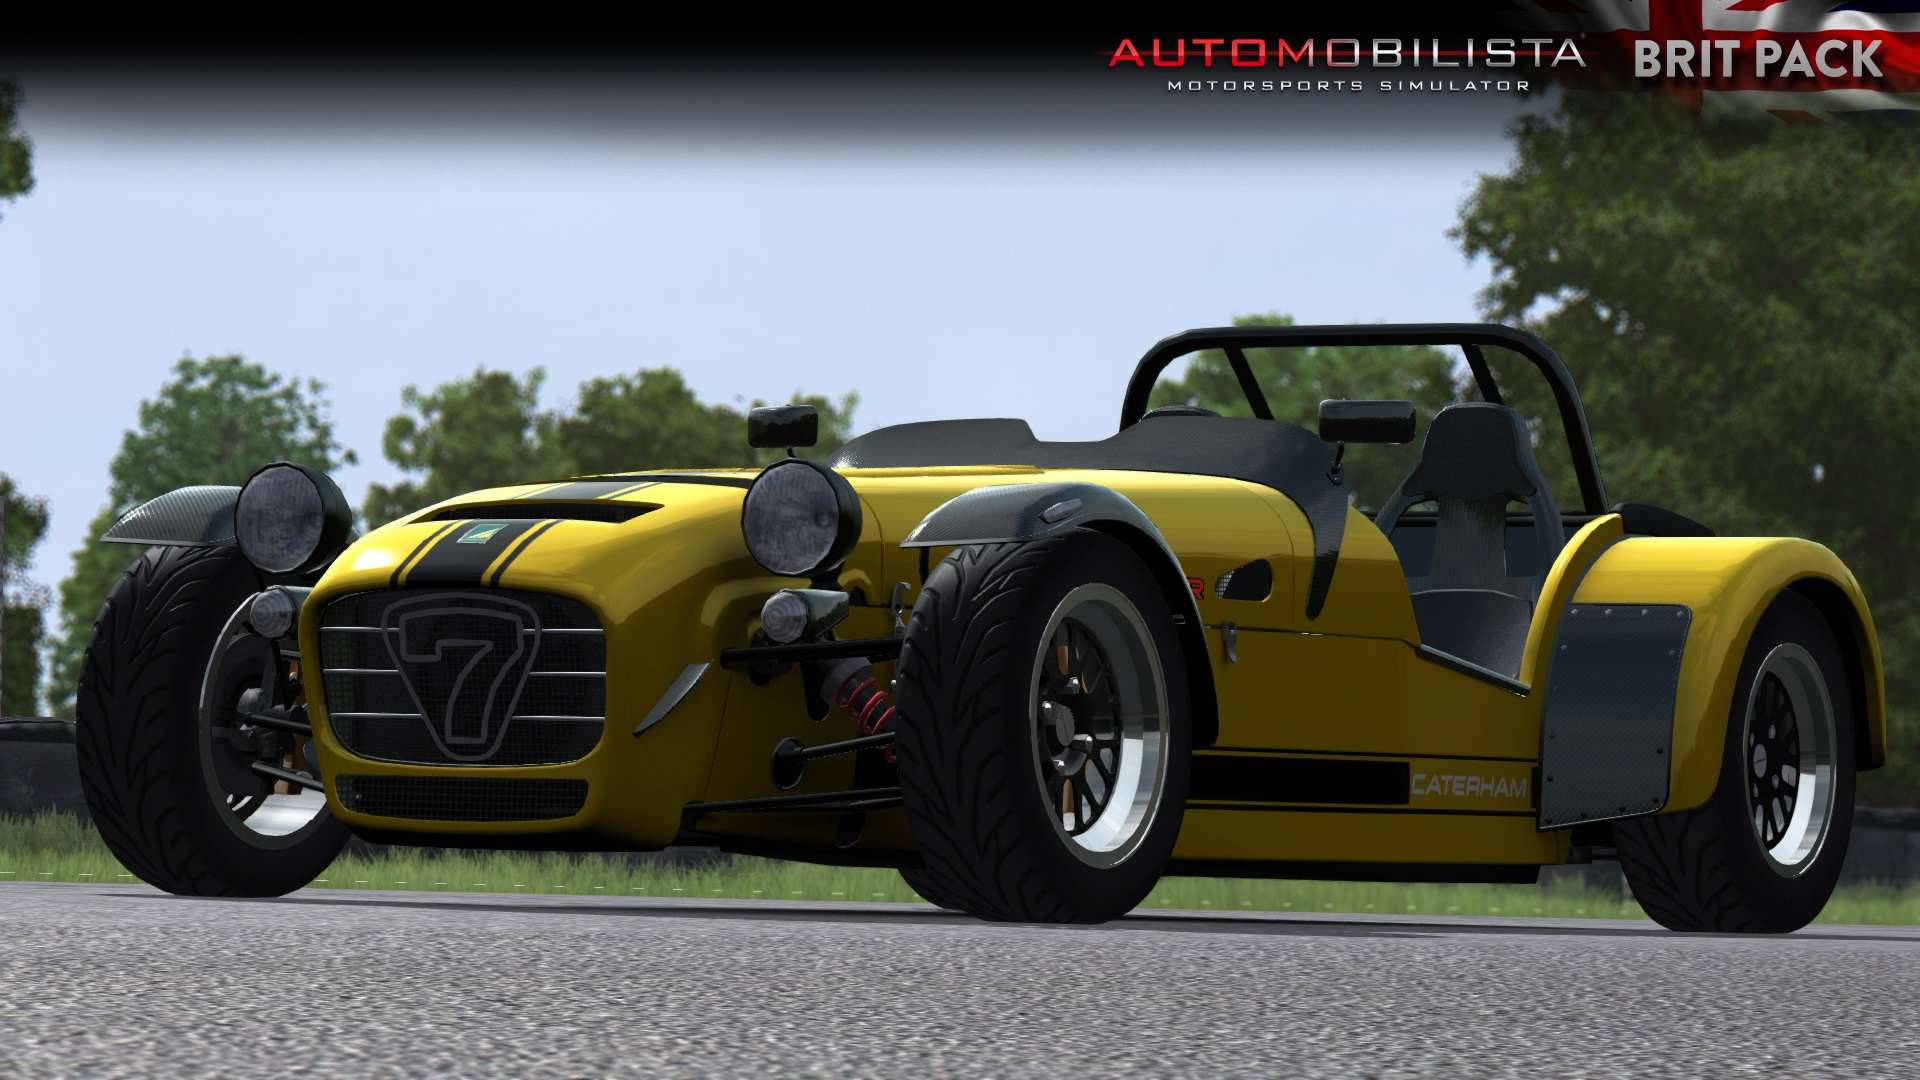 Talk and Drive Episode 21 - Caterham 620r.jpg